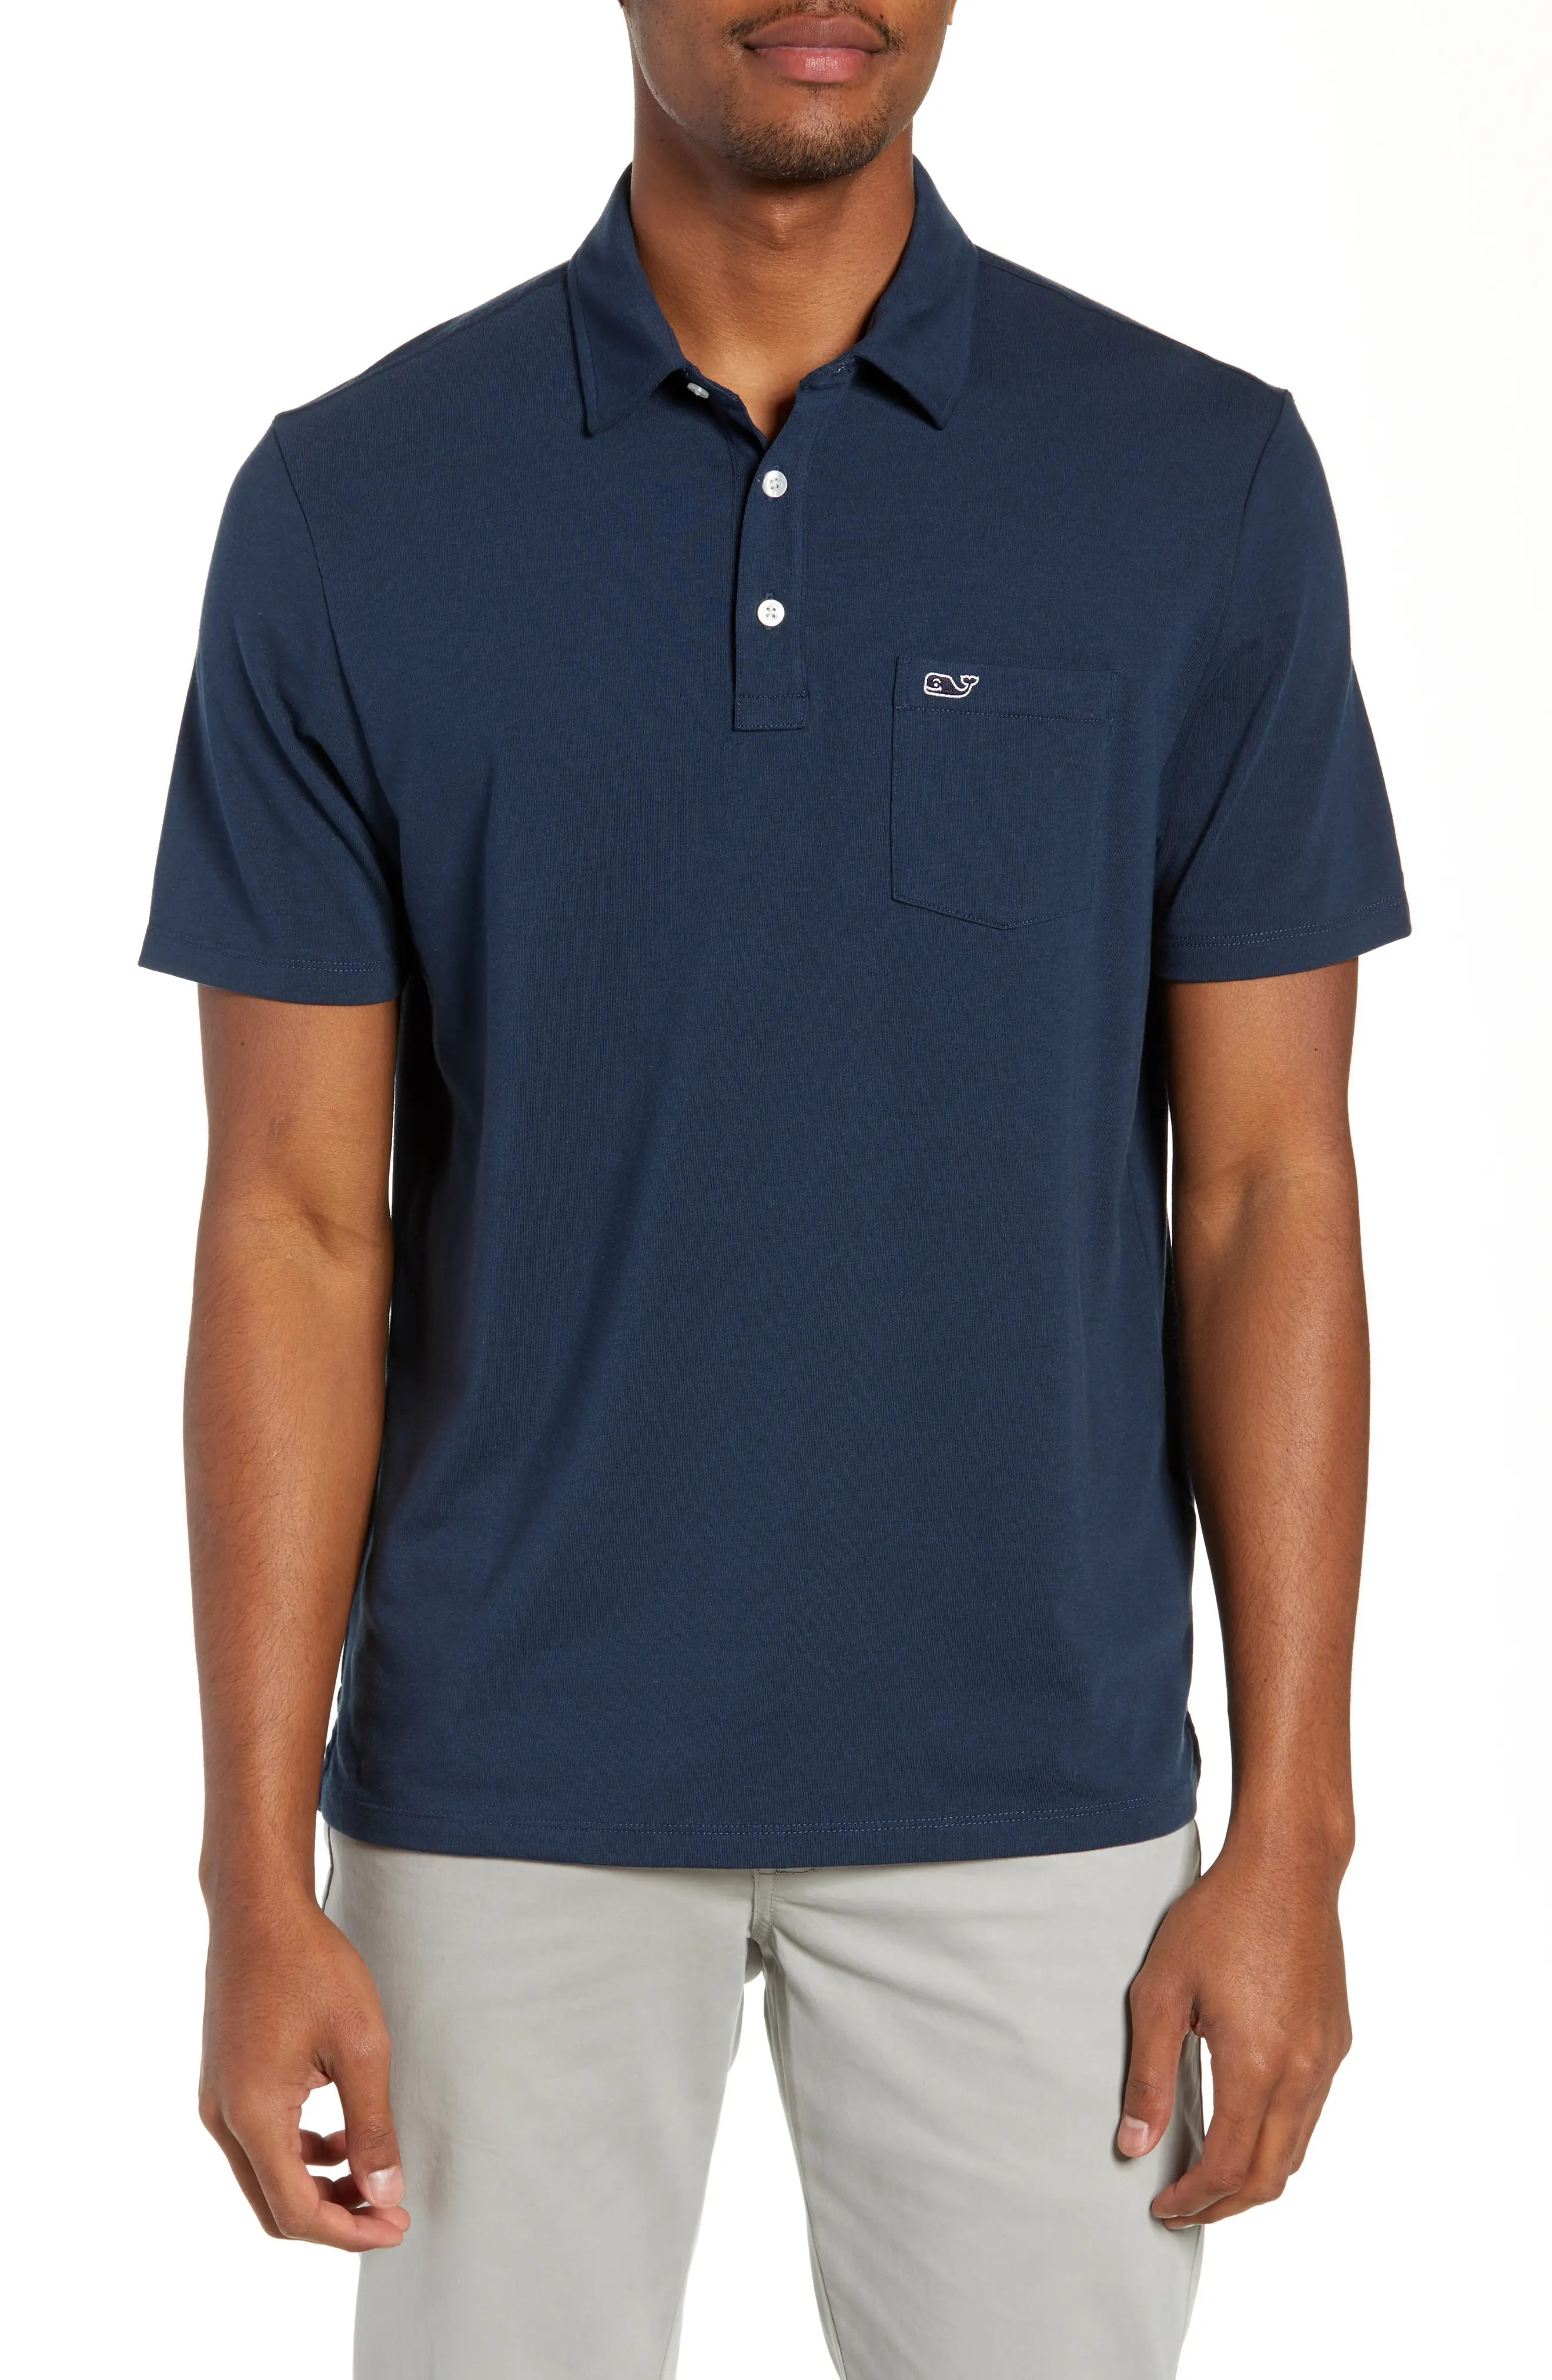 Vineyard vines edgartown polo shirt also big and tall clothing men   suits more nordstrom rh shoprdstrom